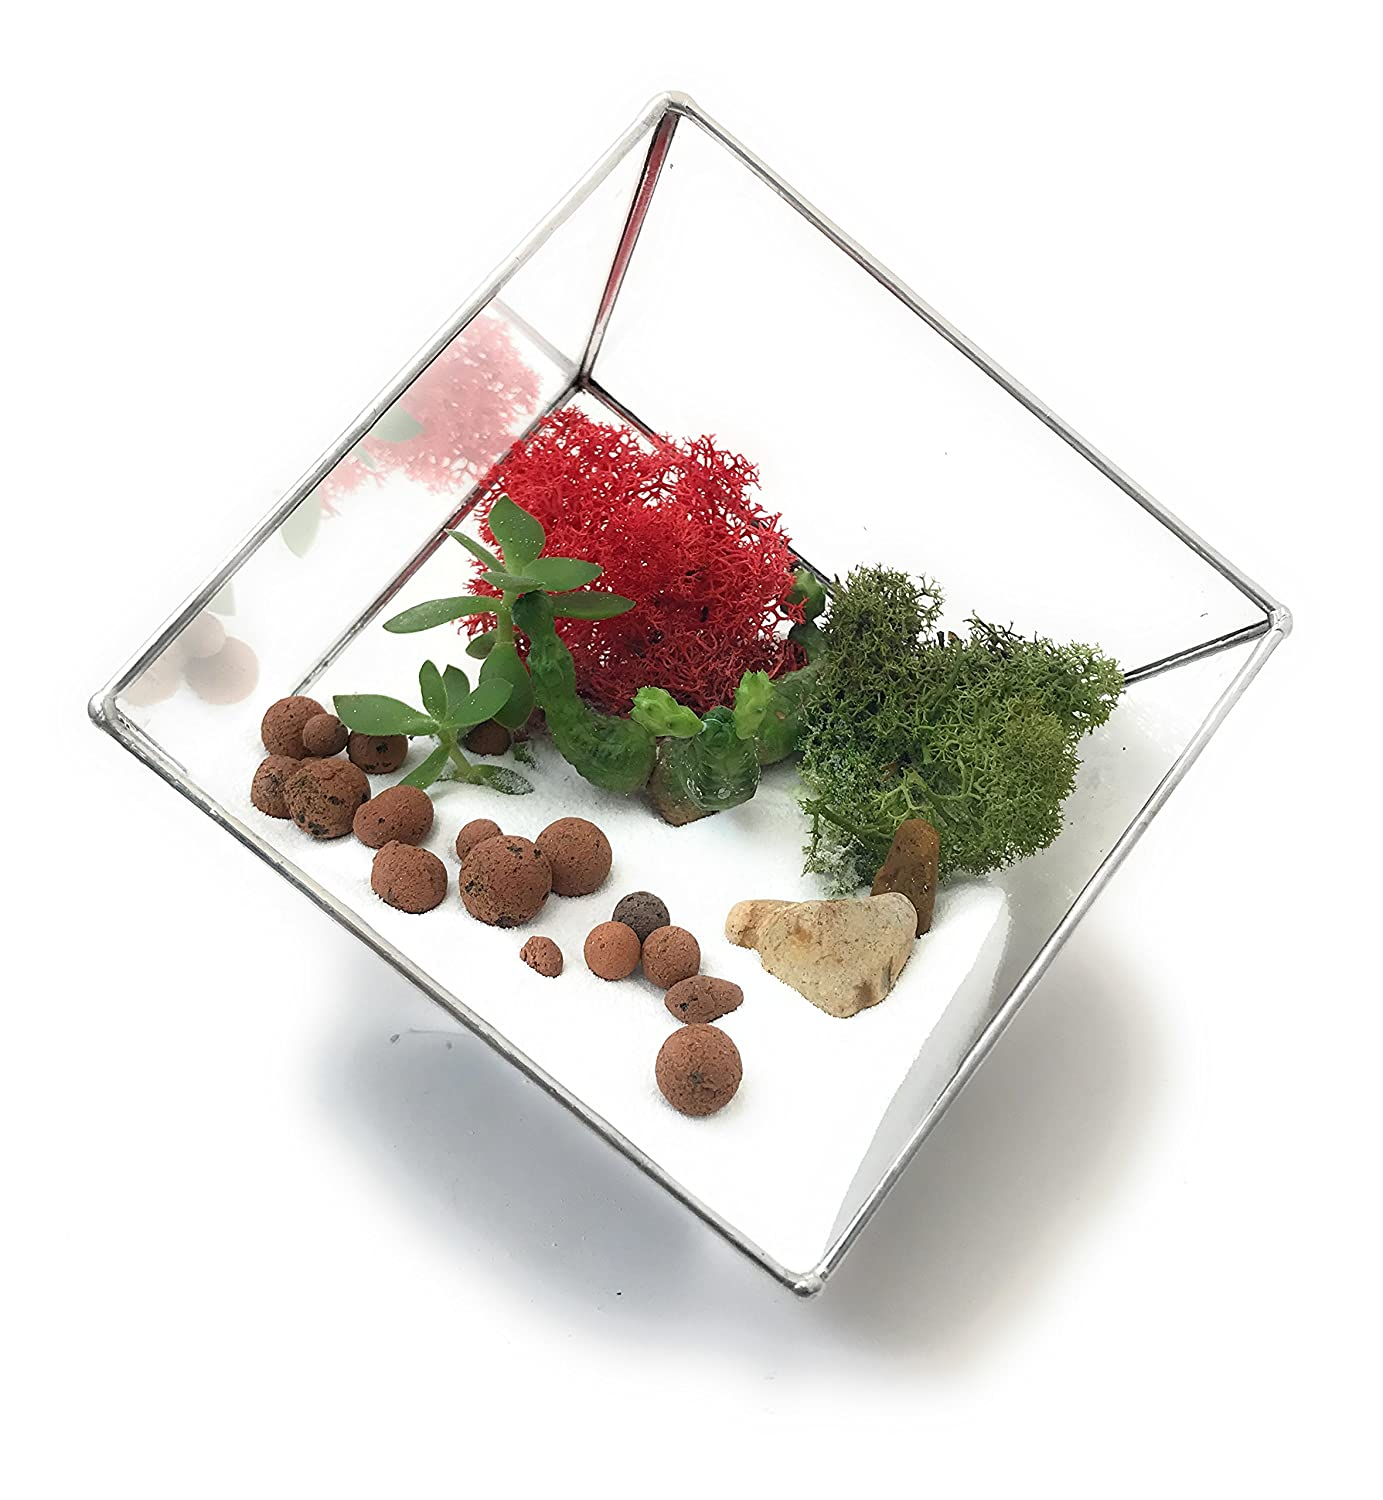 Premium Reindeer Moss Terrarium Kit with Plants Premium Terrarium Kit with Beautiful Reindeer Moss Limited Collection Packed and Made in England (Terrarium Kit with Plants)